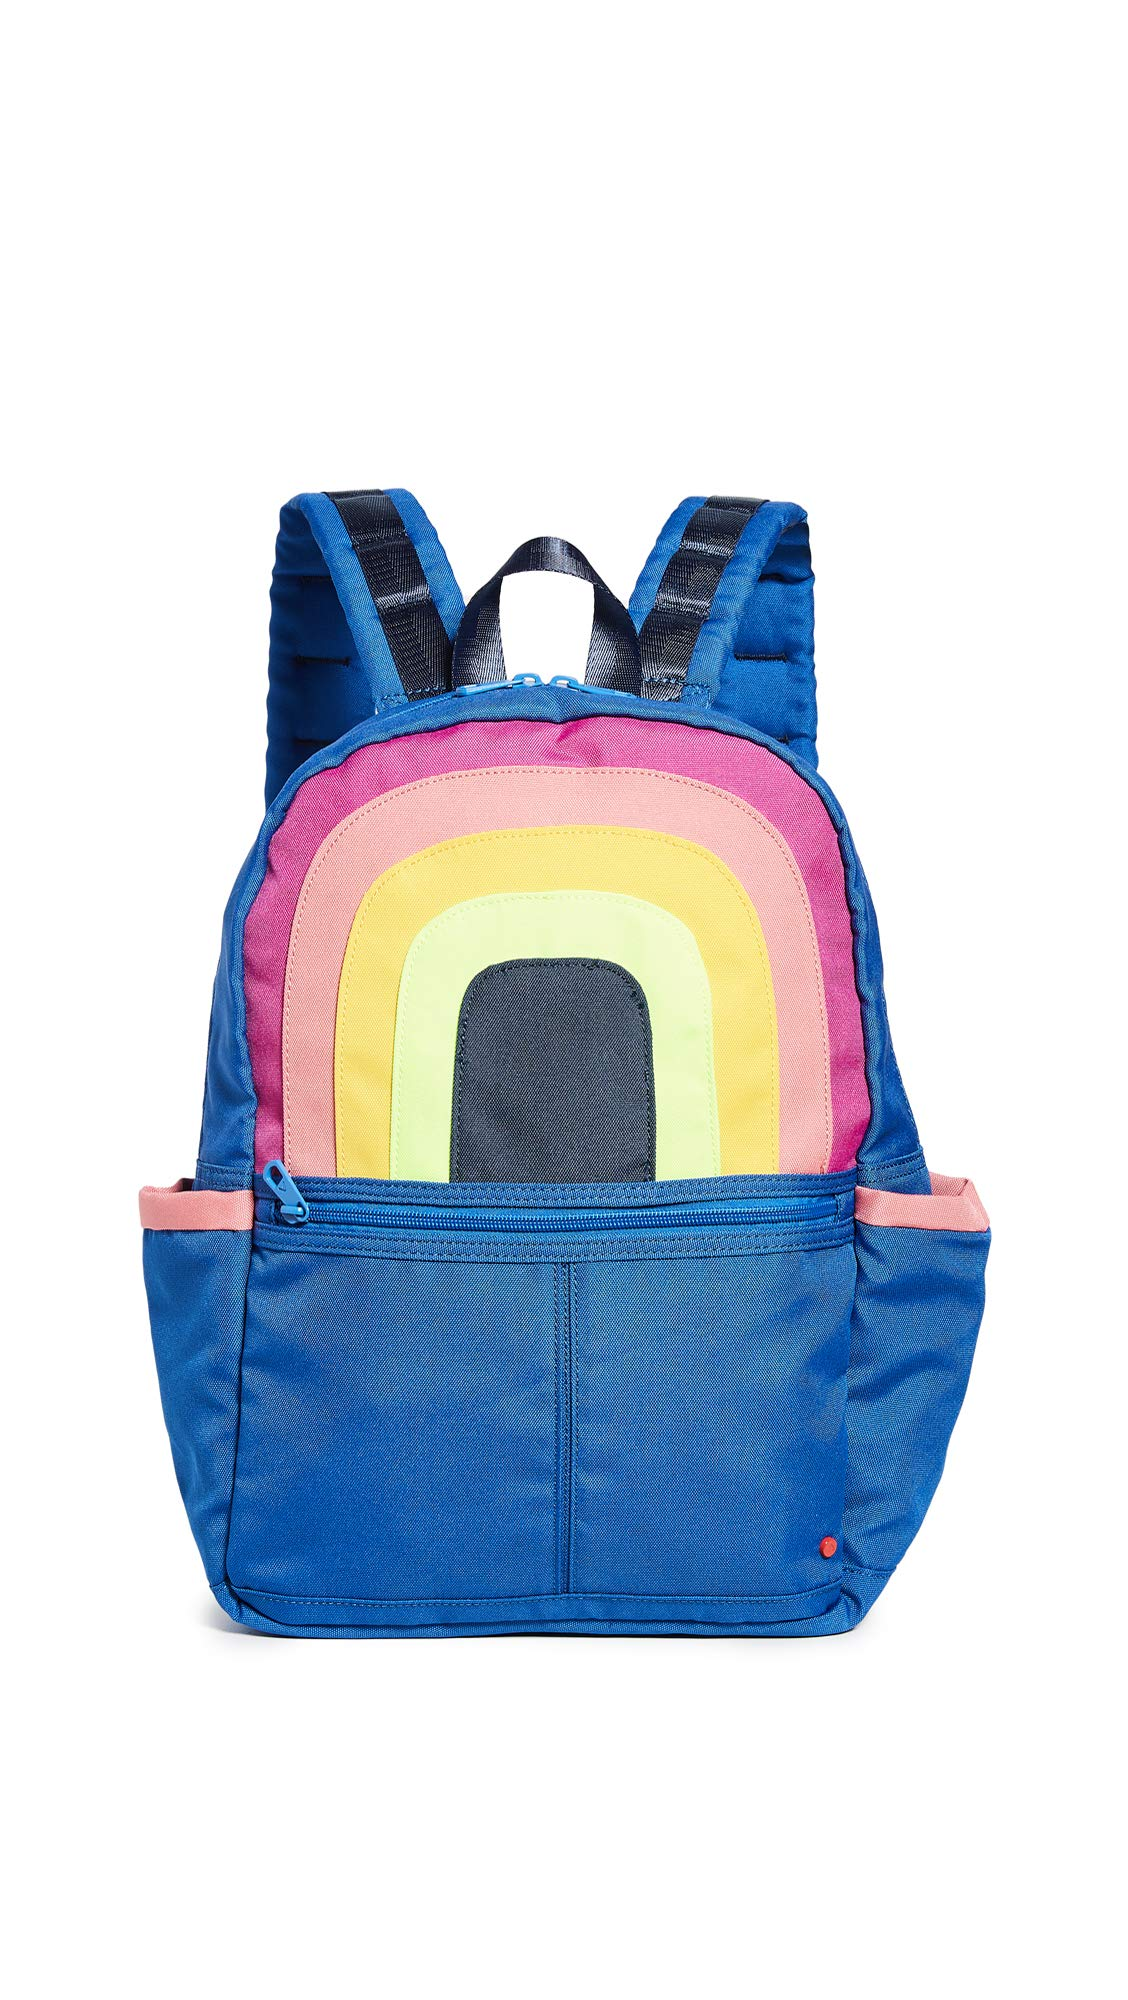 STATE Women's Kane Backpack, Rainbow, Blue, Stripe, One Size by STATE Bags